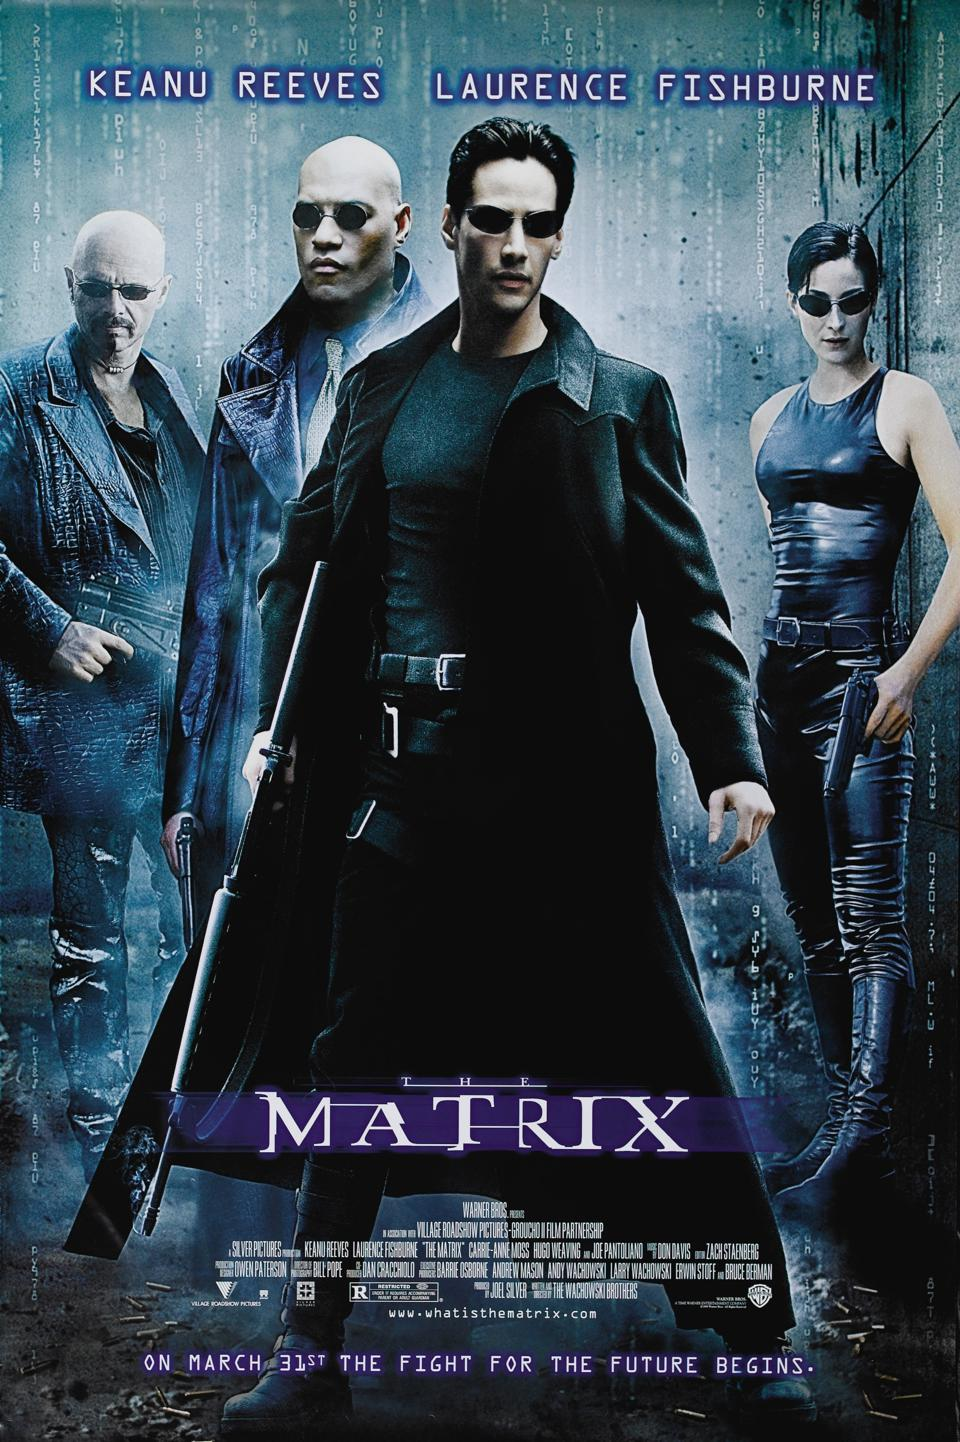 Official poster for Warner's ″The Matrix″